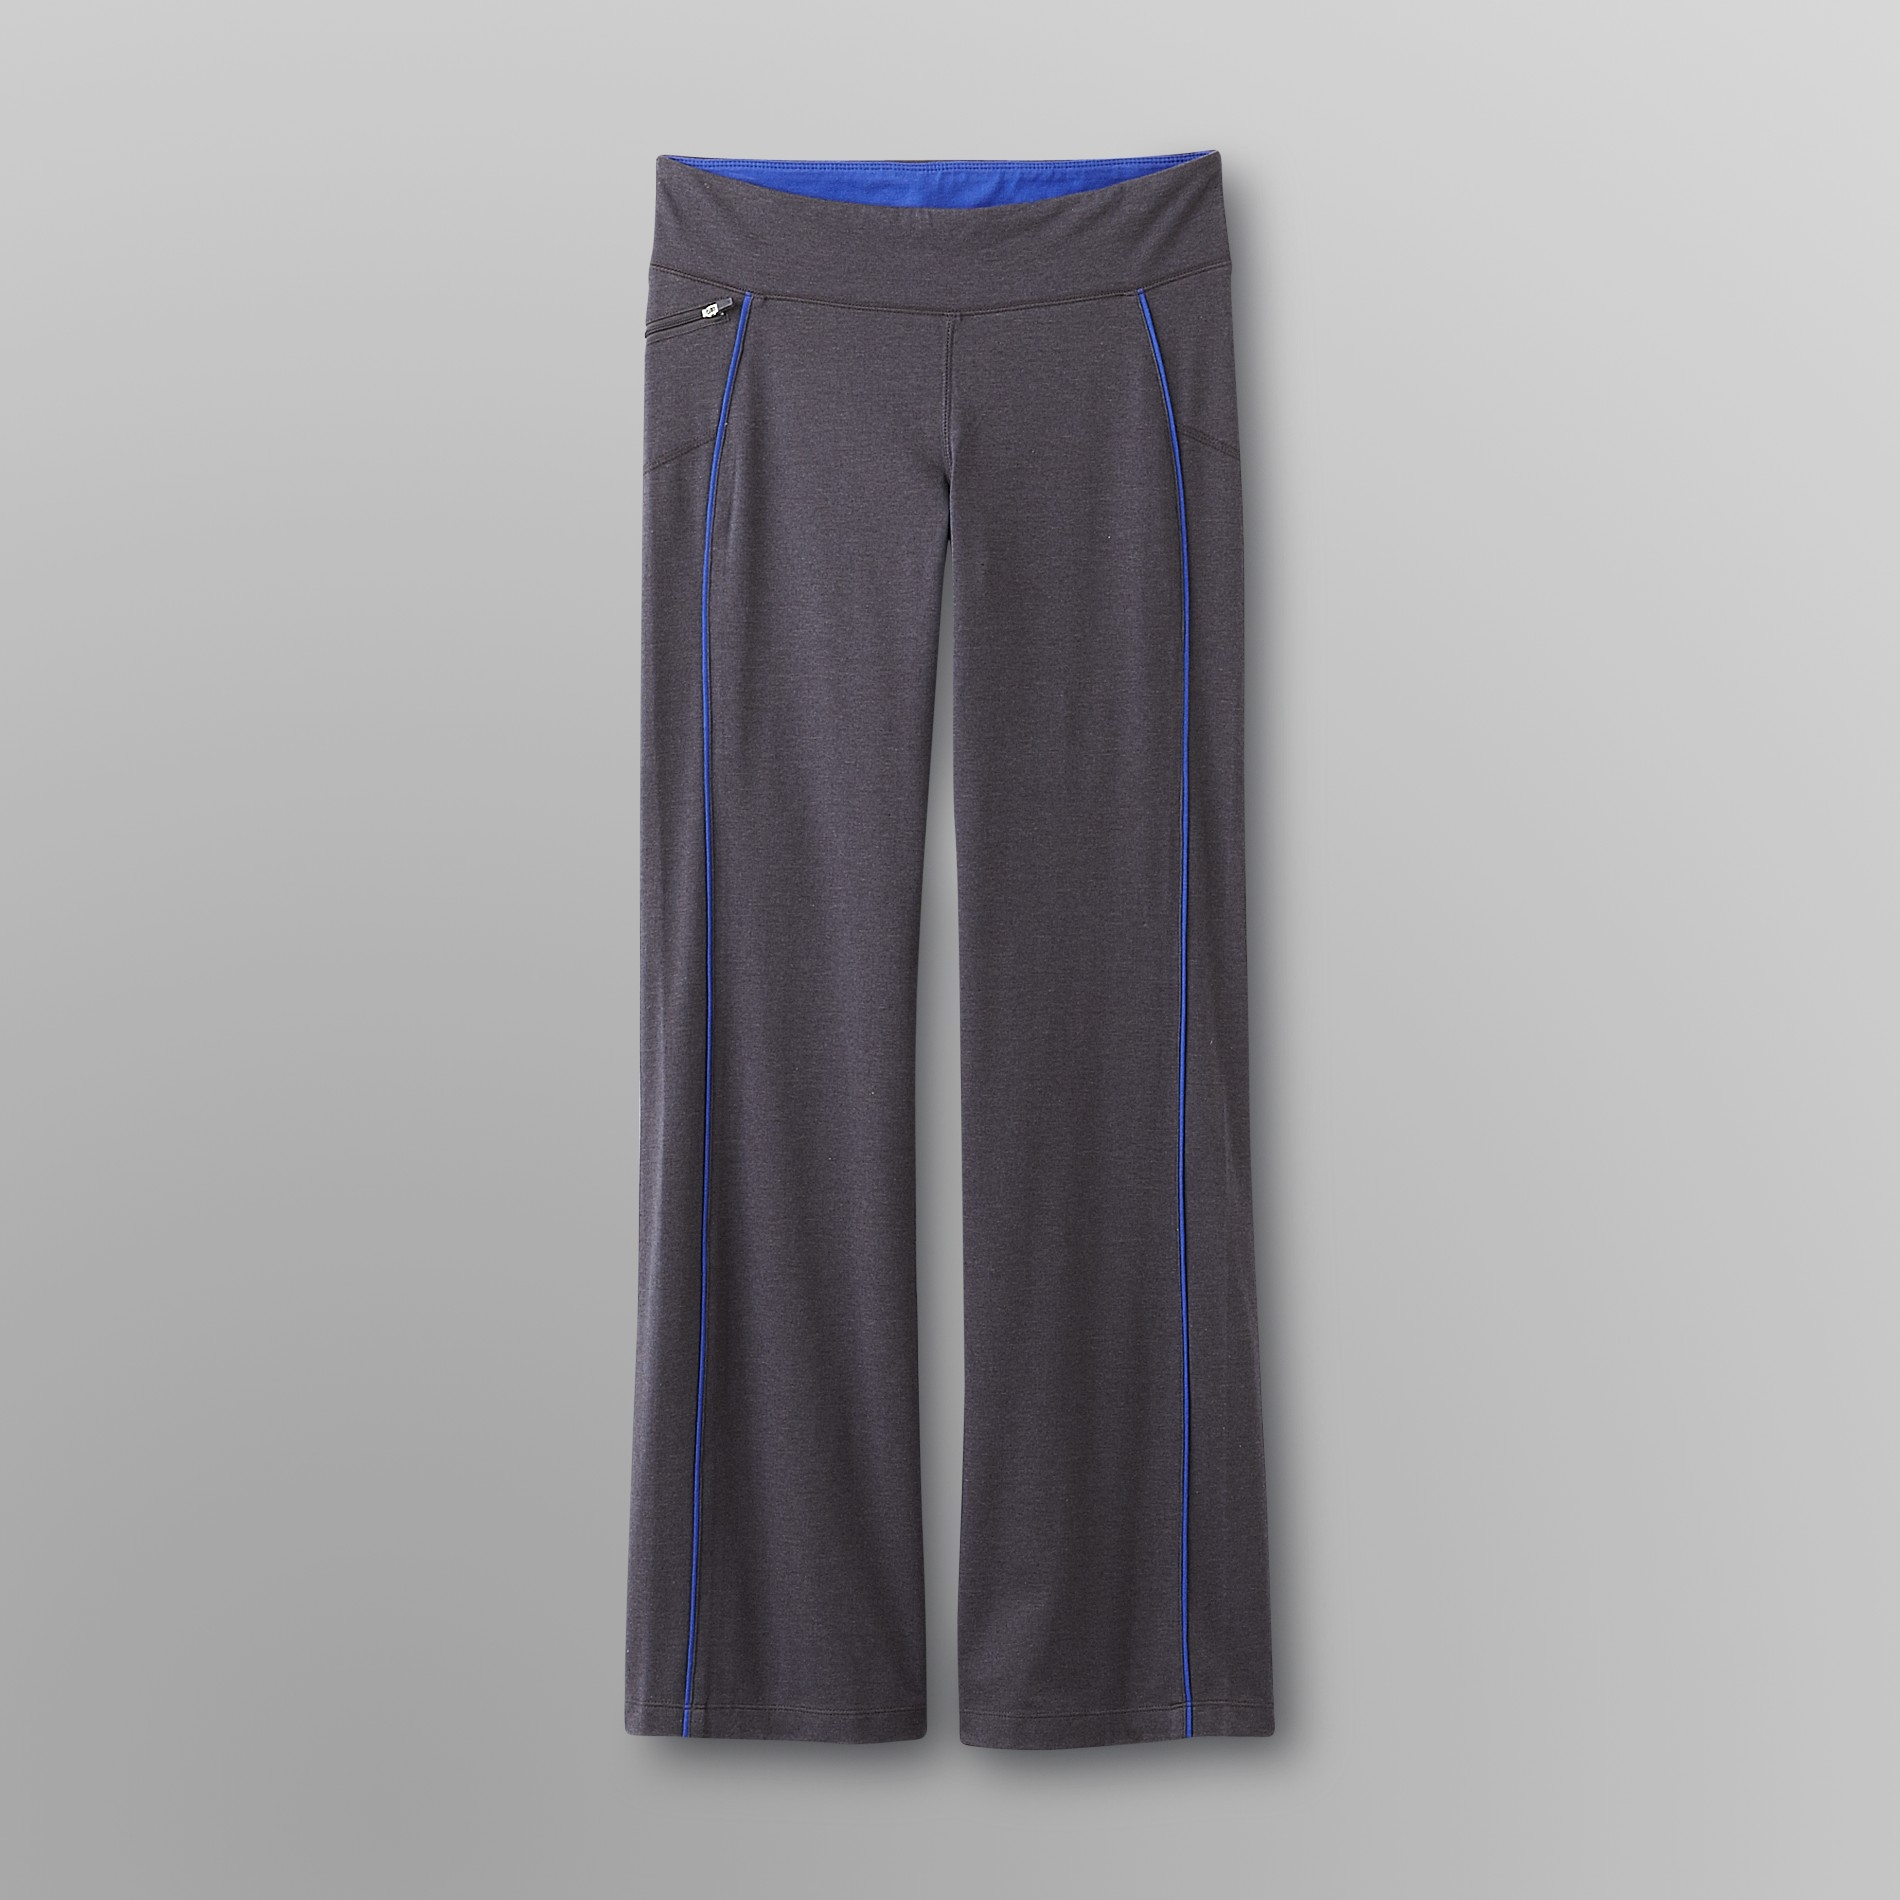 Women's Workout Pants - Slim Fit